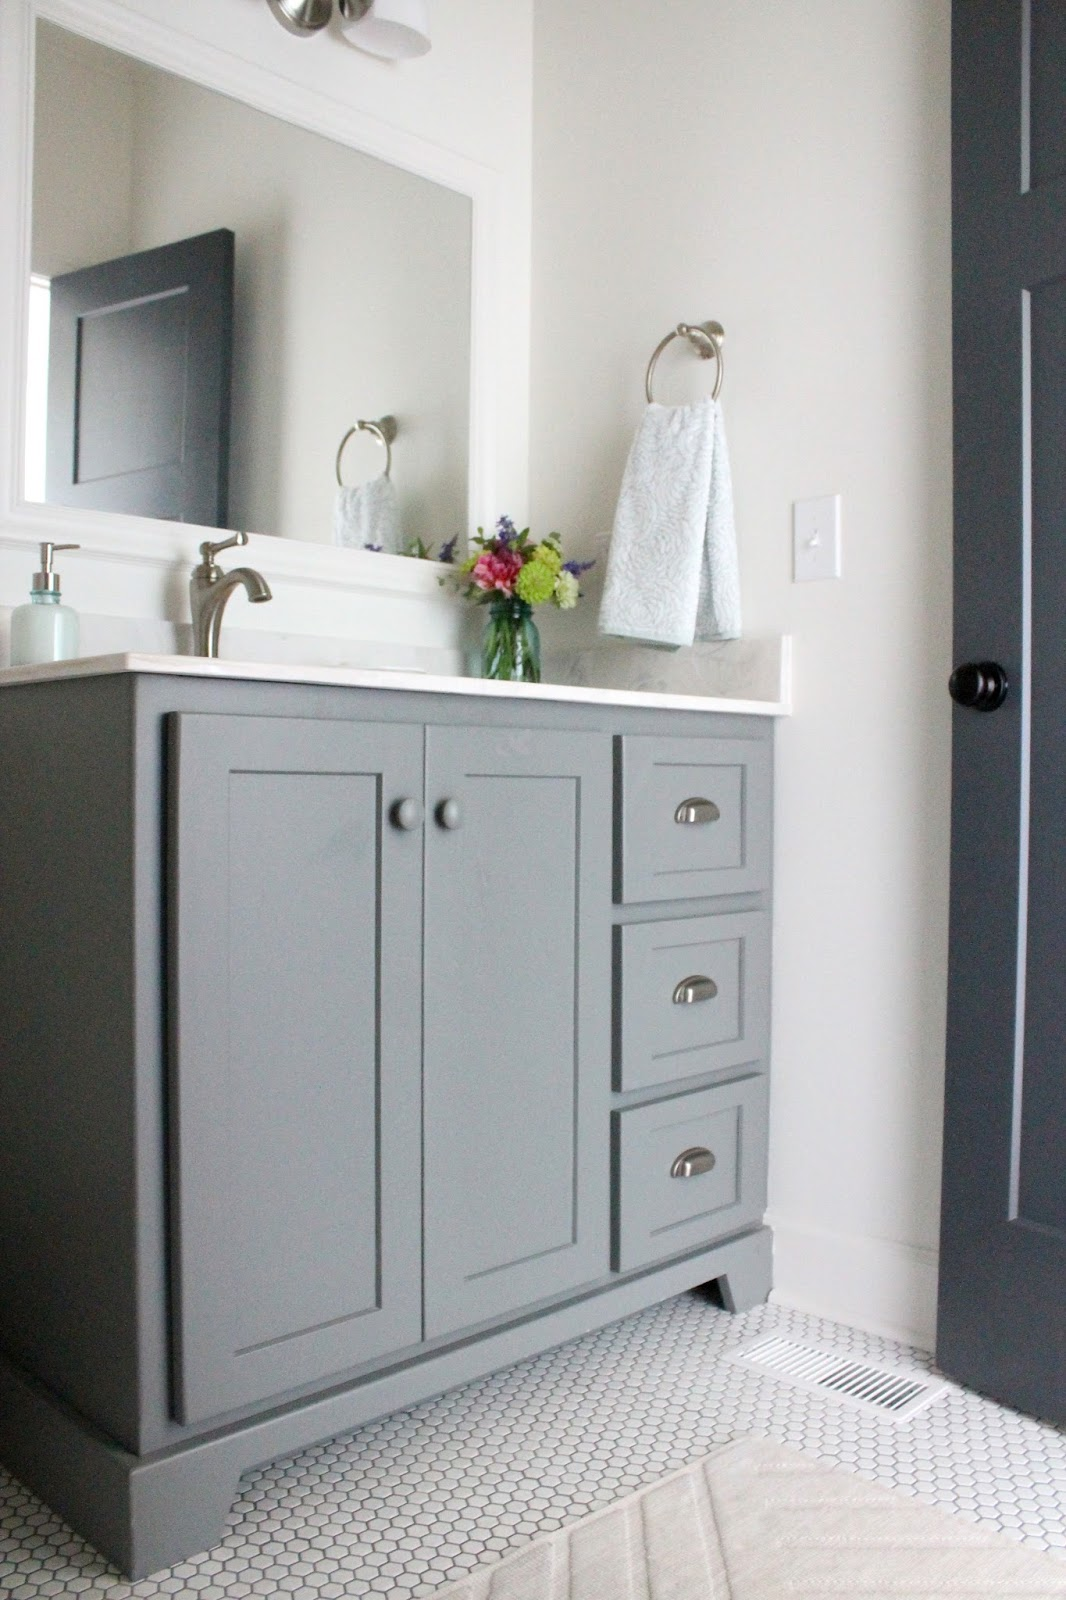 Keeping It Cozy New Home Tour Guest Bathroom